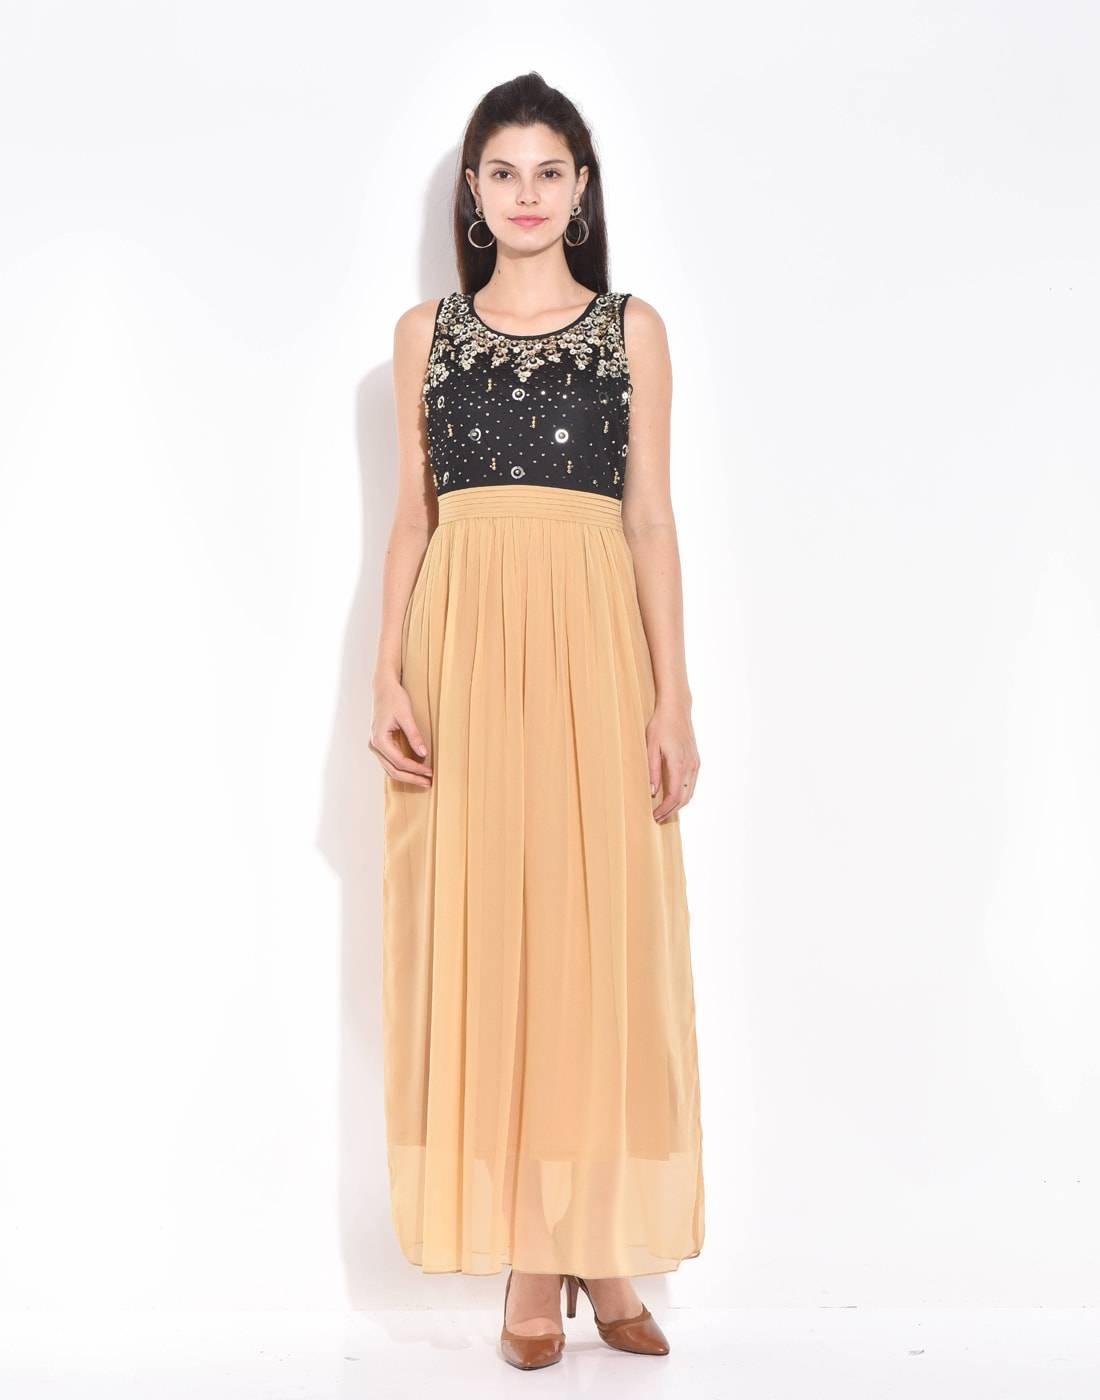 Beige-Black Maxi Beaded and Sequined Dress - West by East